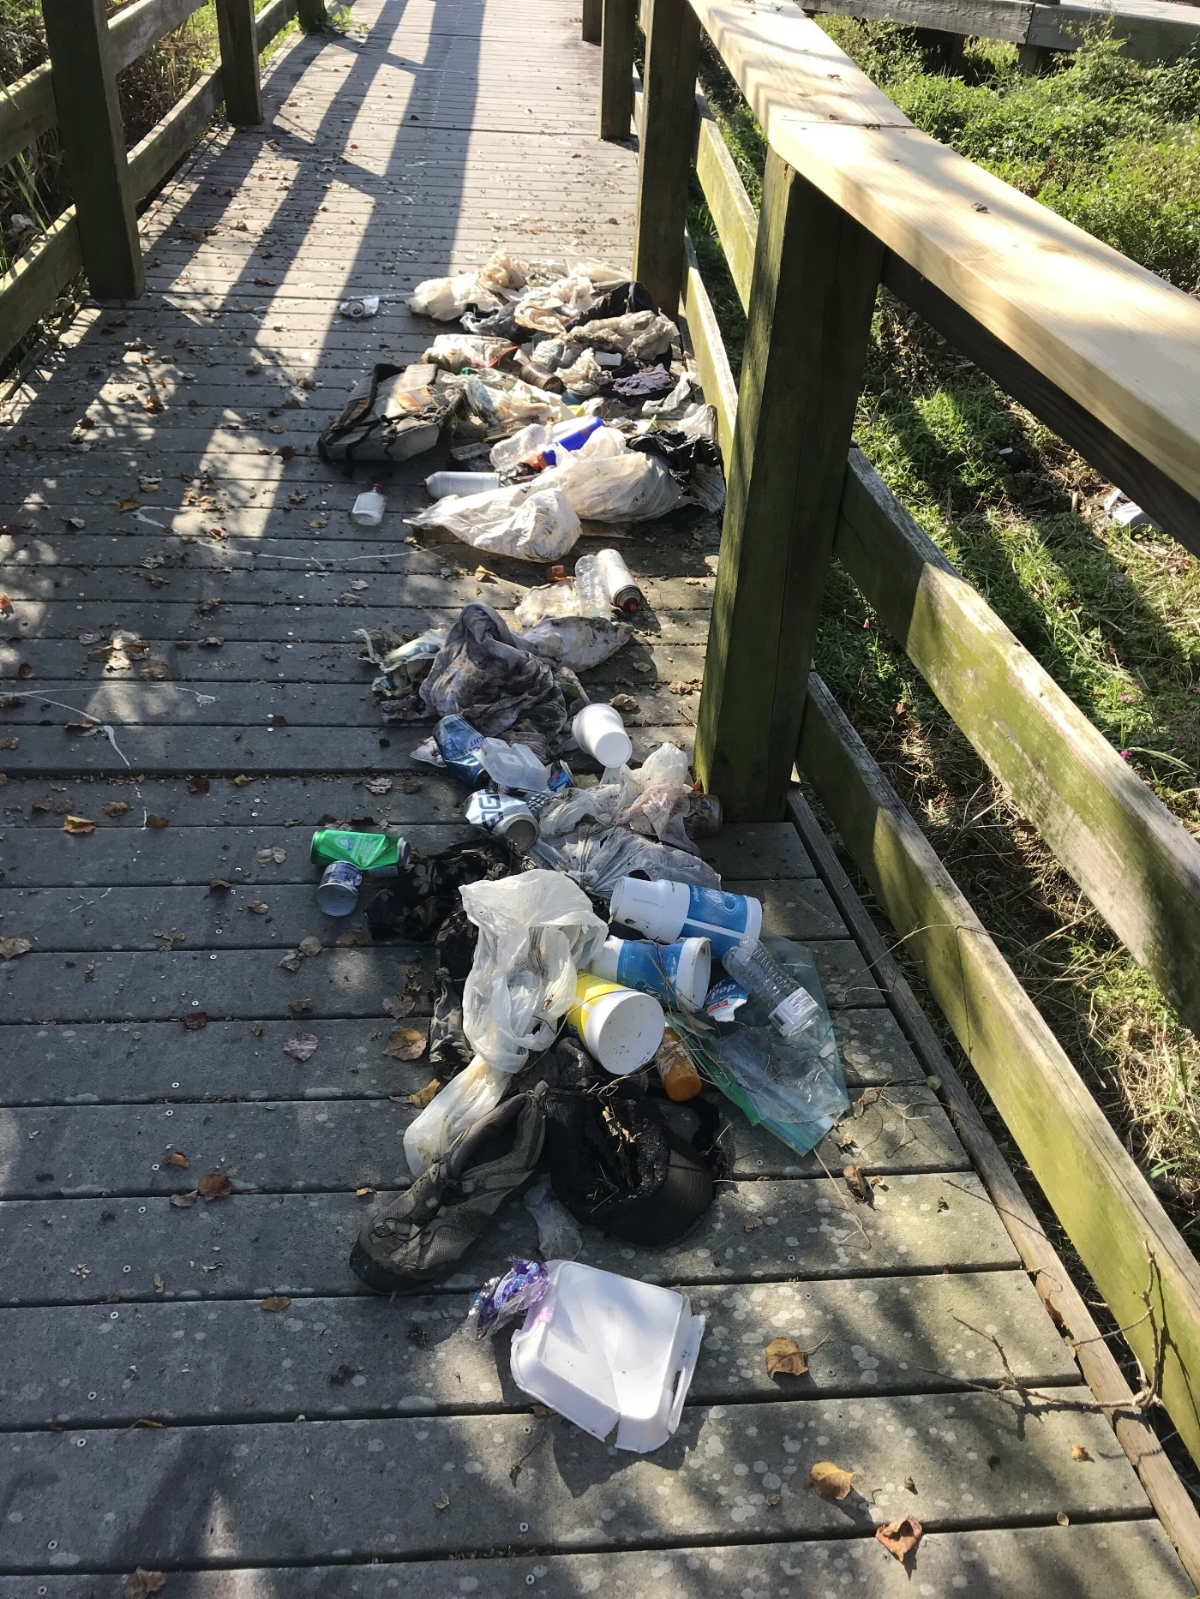 - Trash from ~16' along the boardwalk at the Graffiti Bridge stormwater pond. At least this mess won't end up in Bayou Texar!